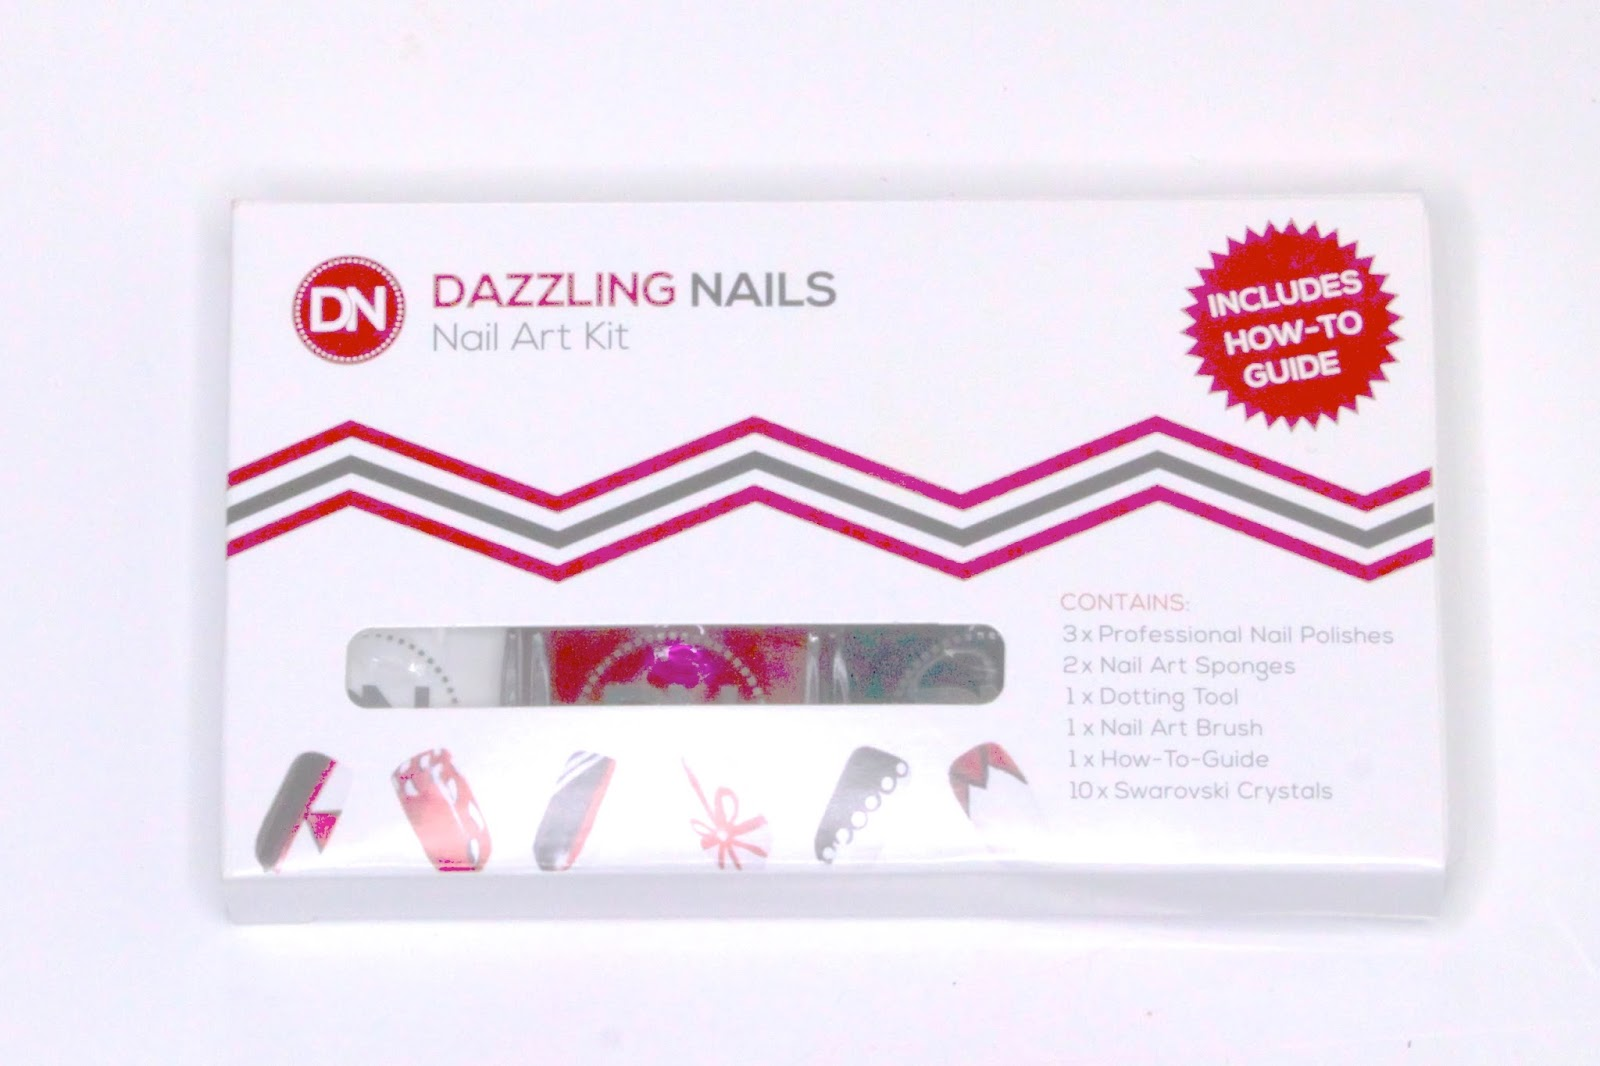 A Christmas Gift for Your Sister - The Nail Art Kit by Dazzling Nails (And one for you x)